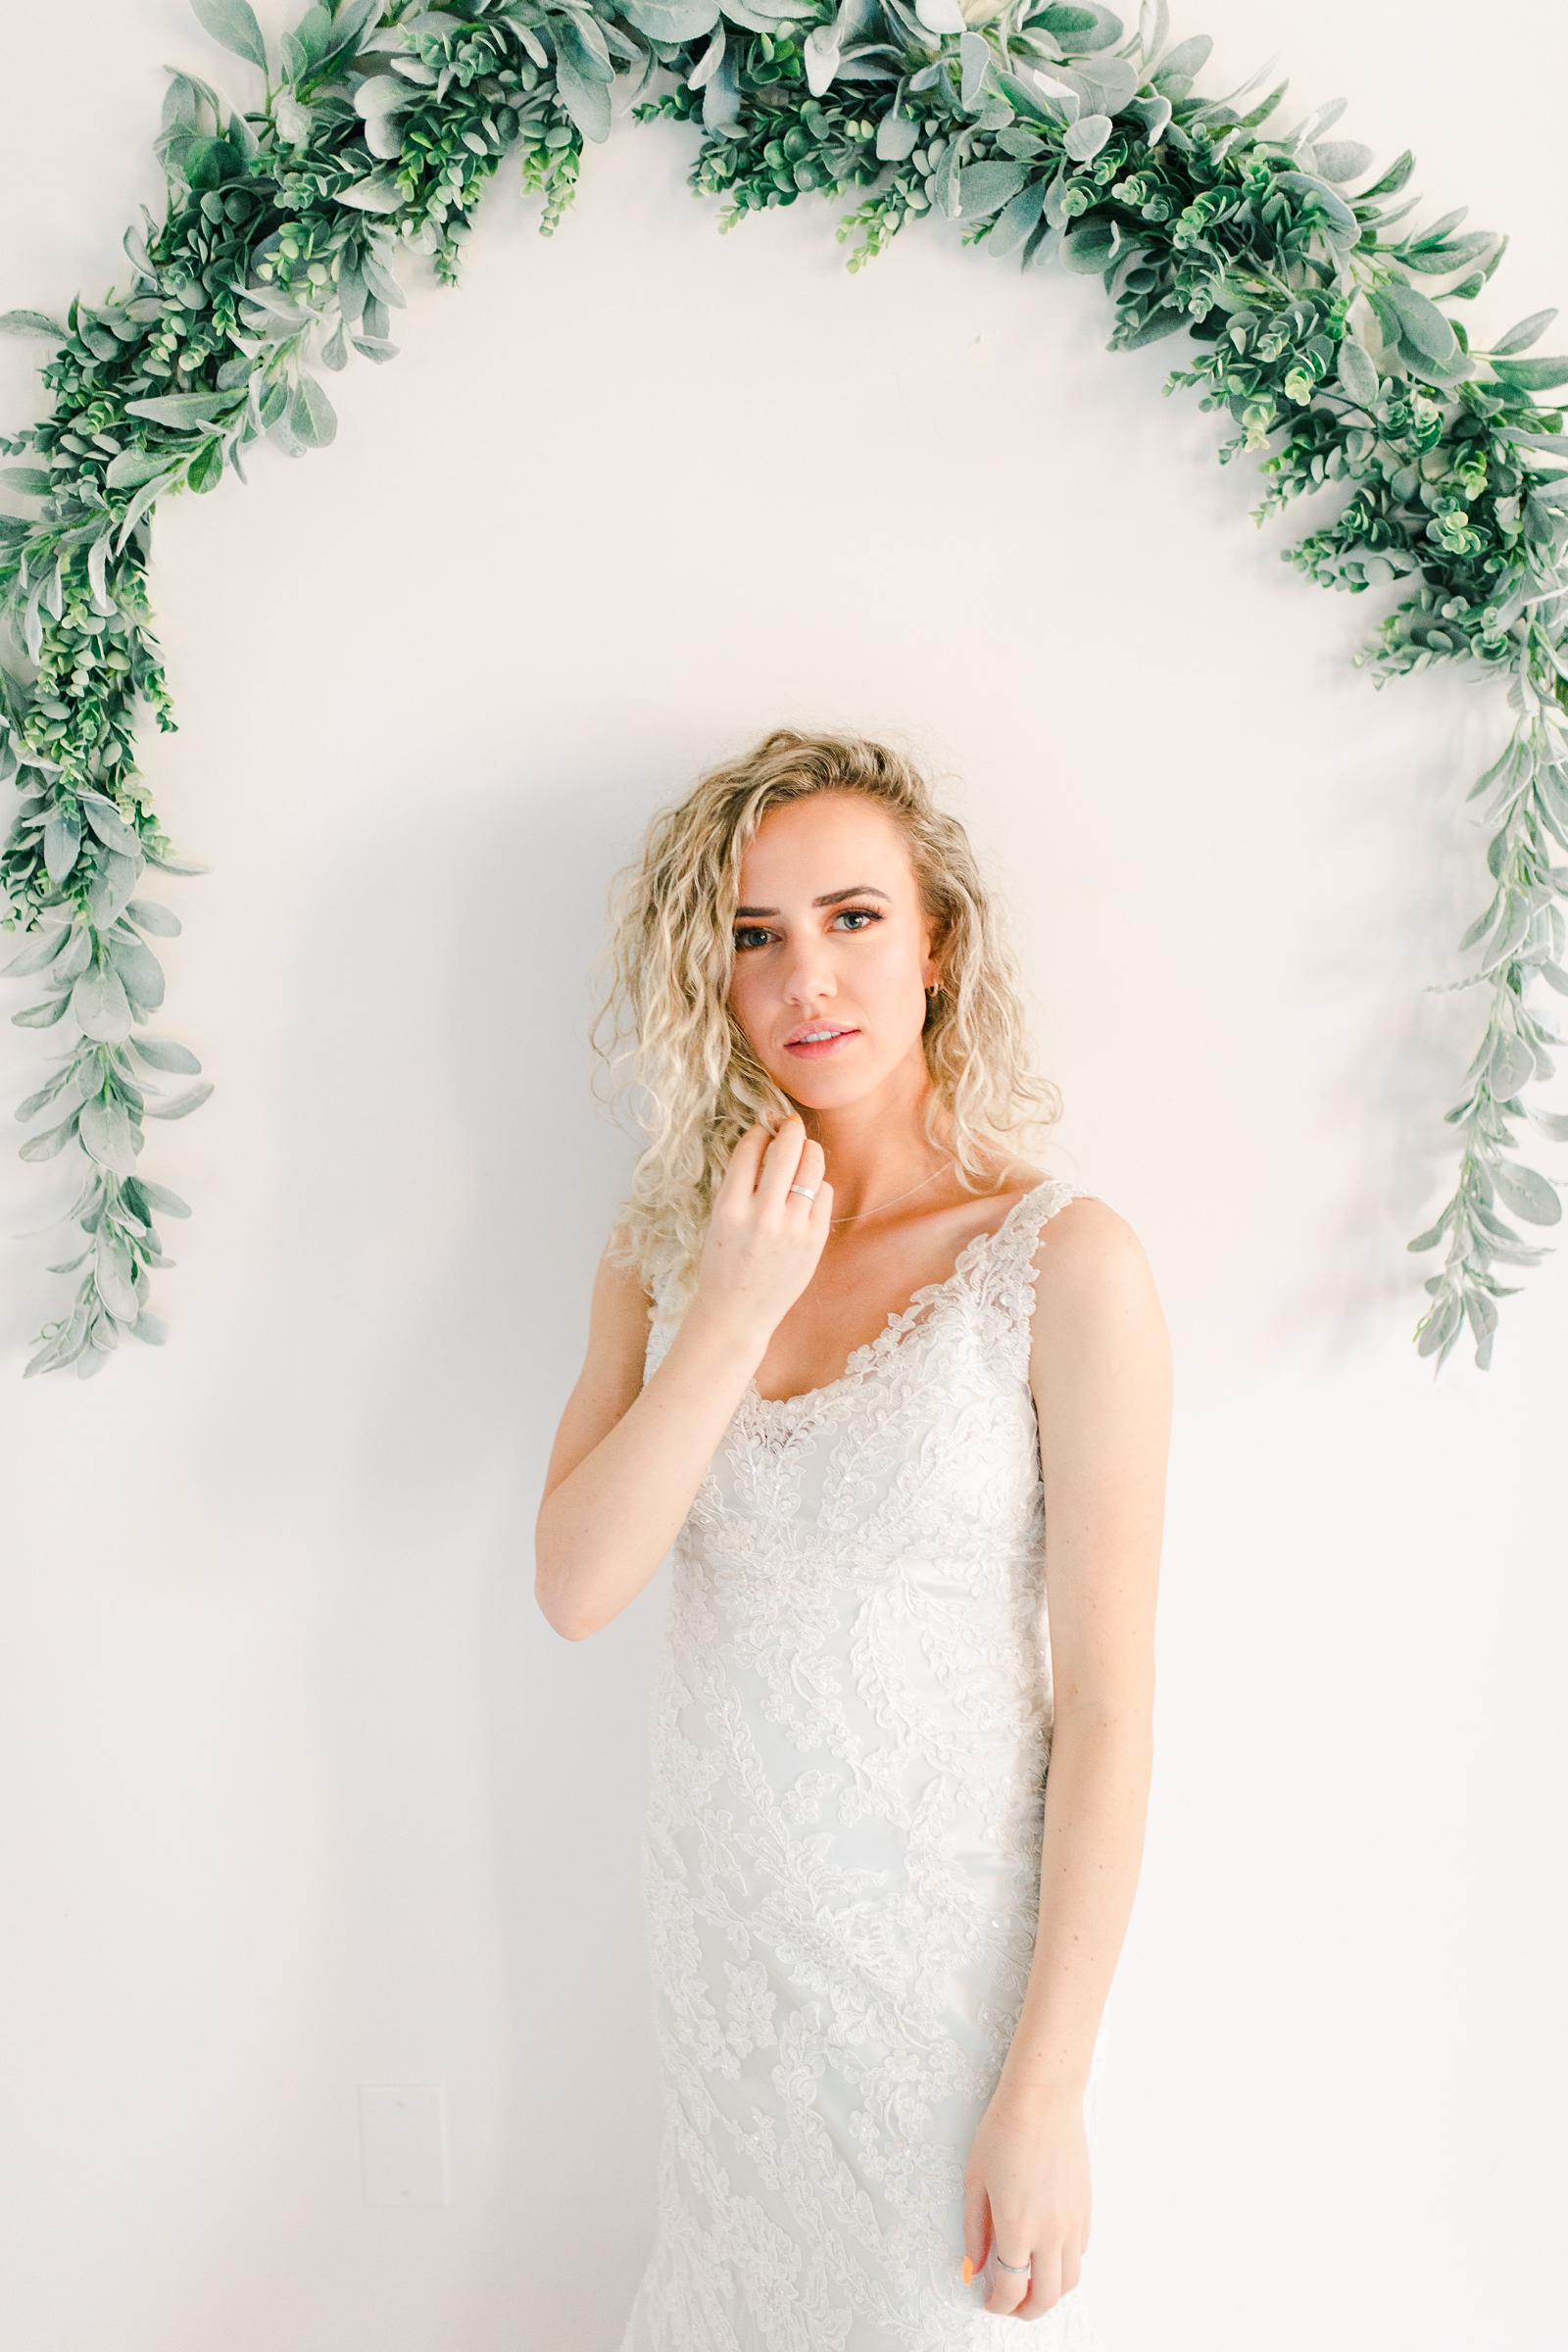 Utah wedding photography, bride in lace wedding dress with long flowy veil and white tie in front of white wall with eucalyptus greenery garland arch